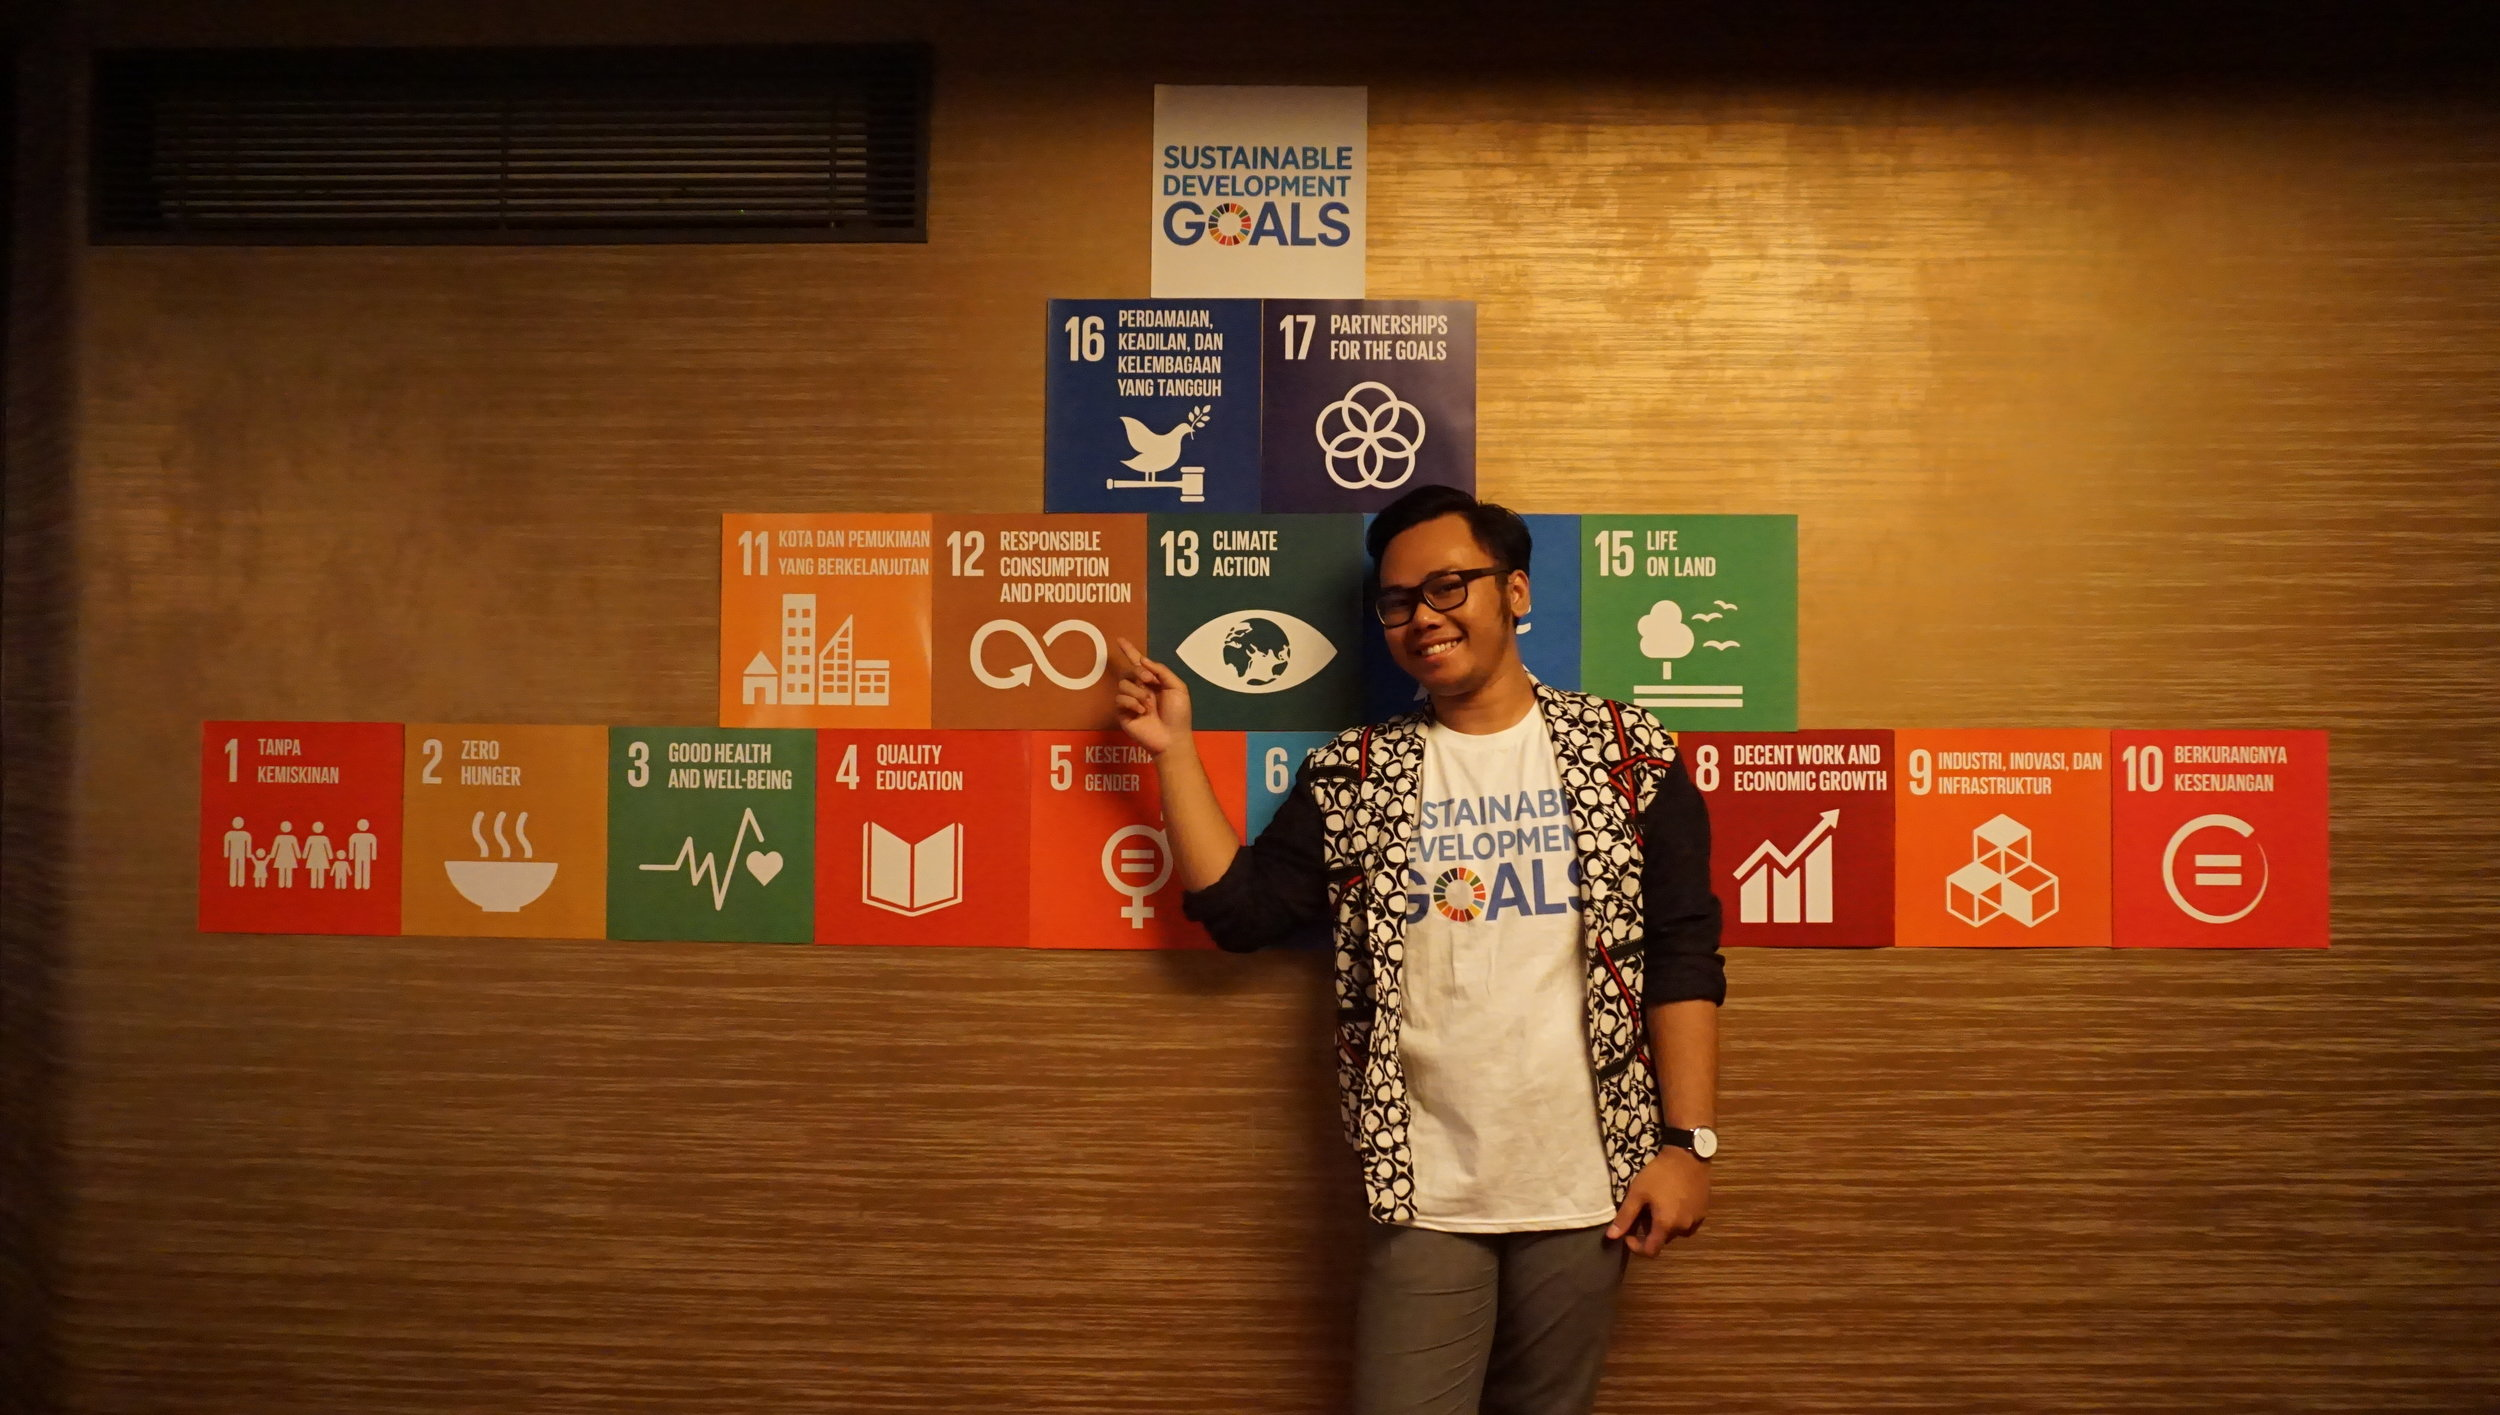 Me with the SDG Pyramid, Goal #12 is my priority.